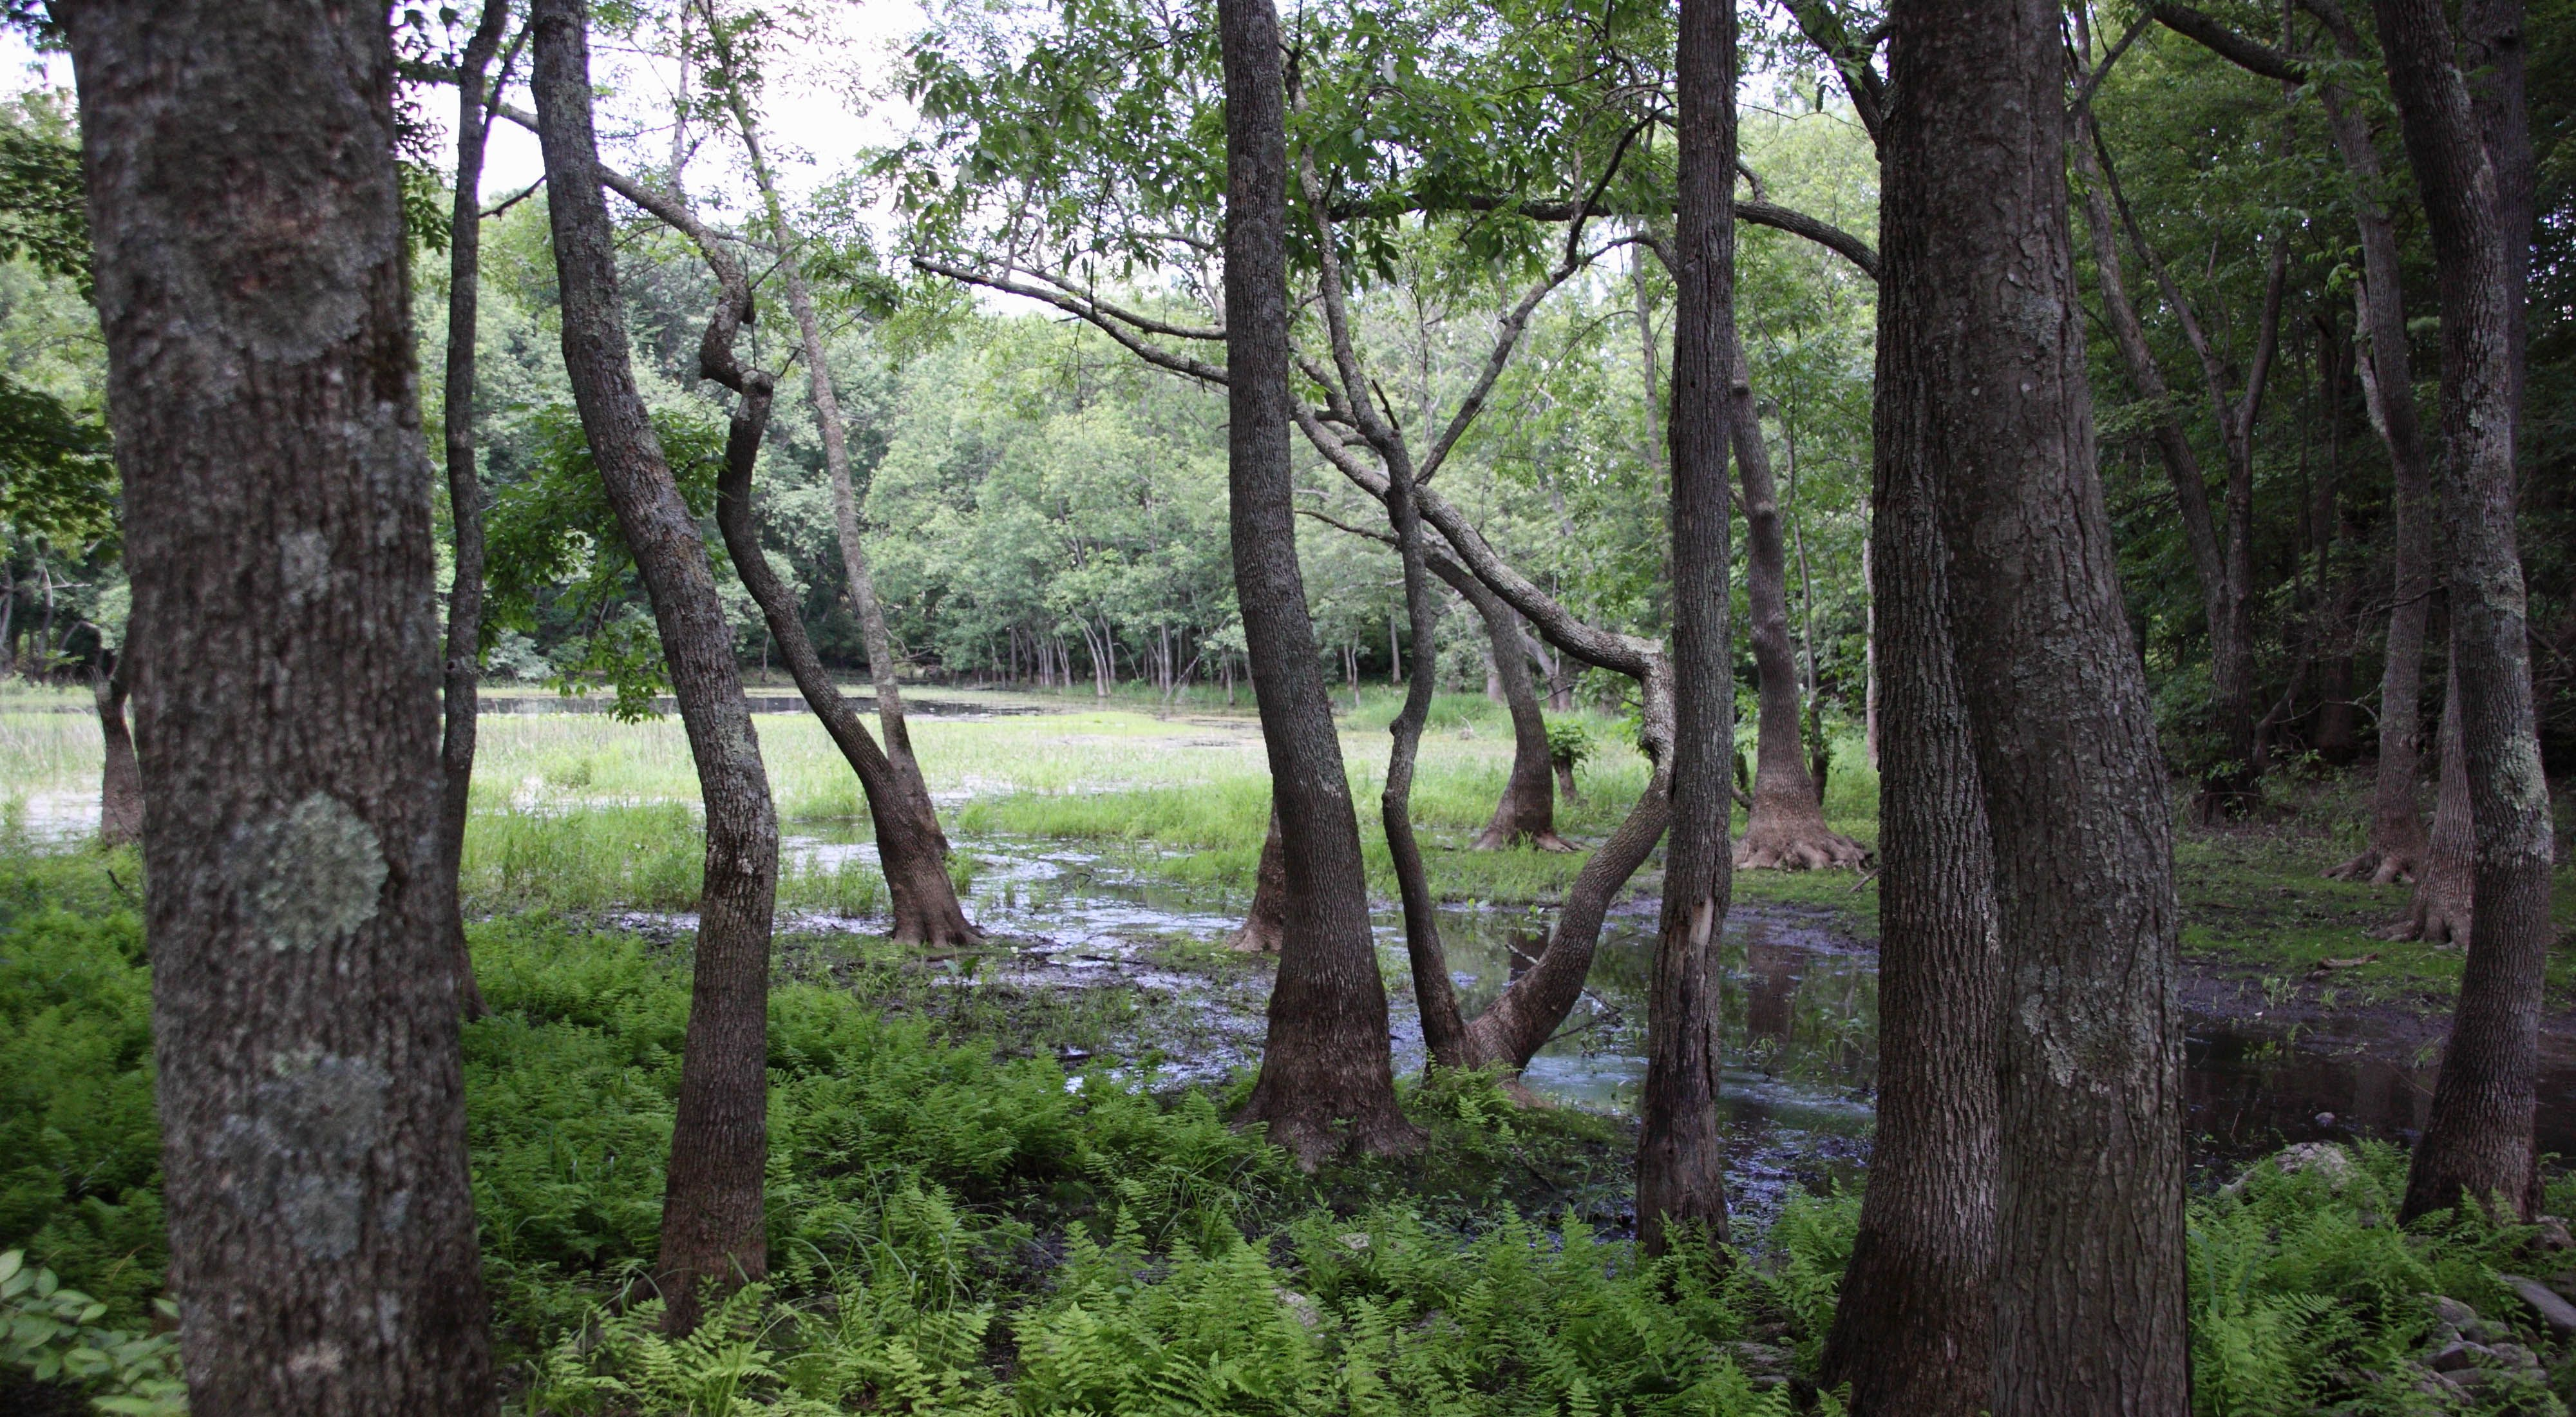 The forested woodlands and unusual ponds of Muckshaw Ponds Preserve in New Jersey.